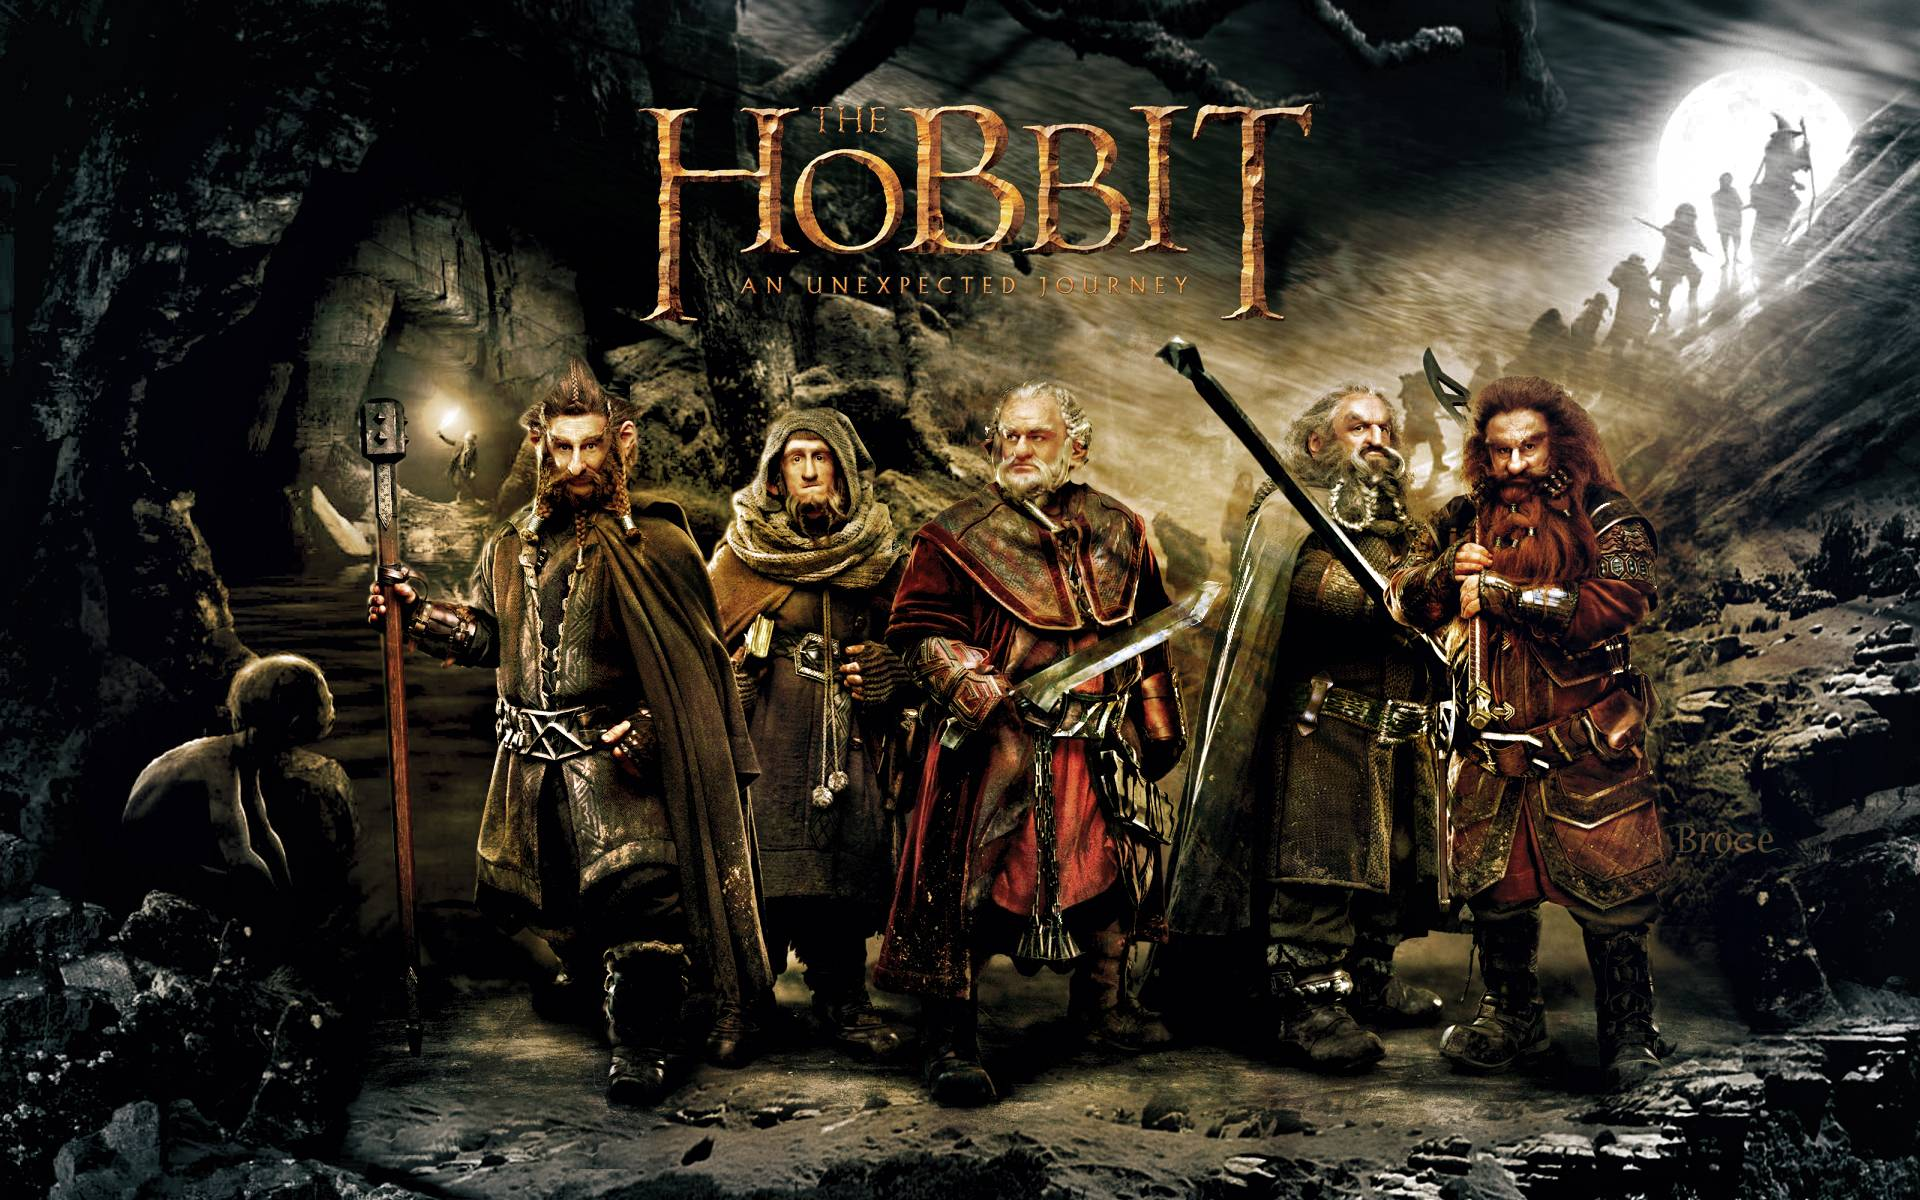 2012 The Hobbit An Unexpected Journey Wallpapers | HD Wallpapers